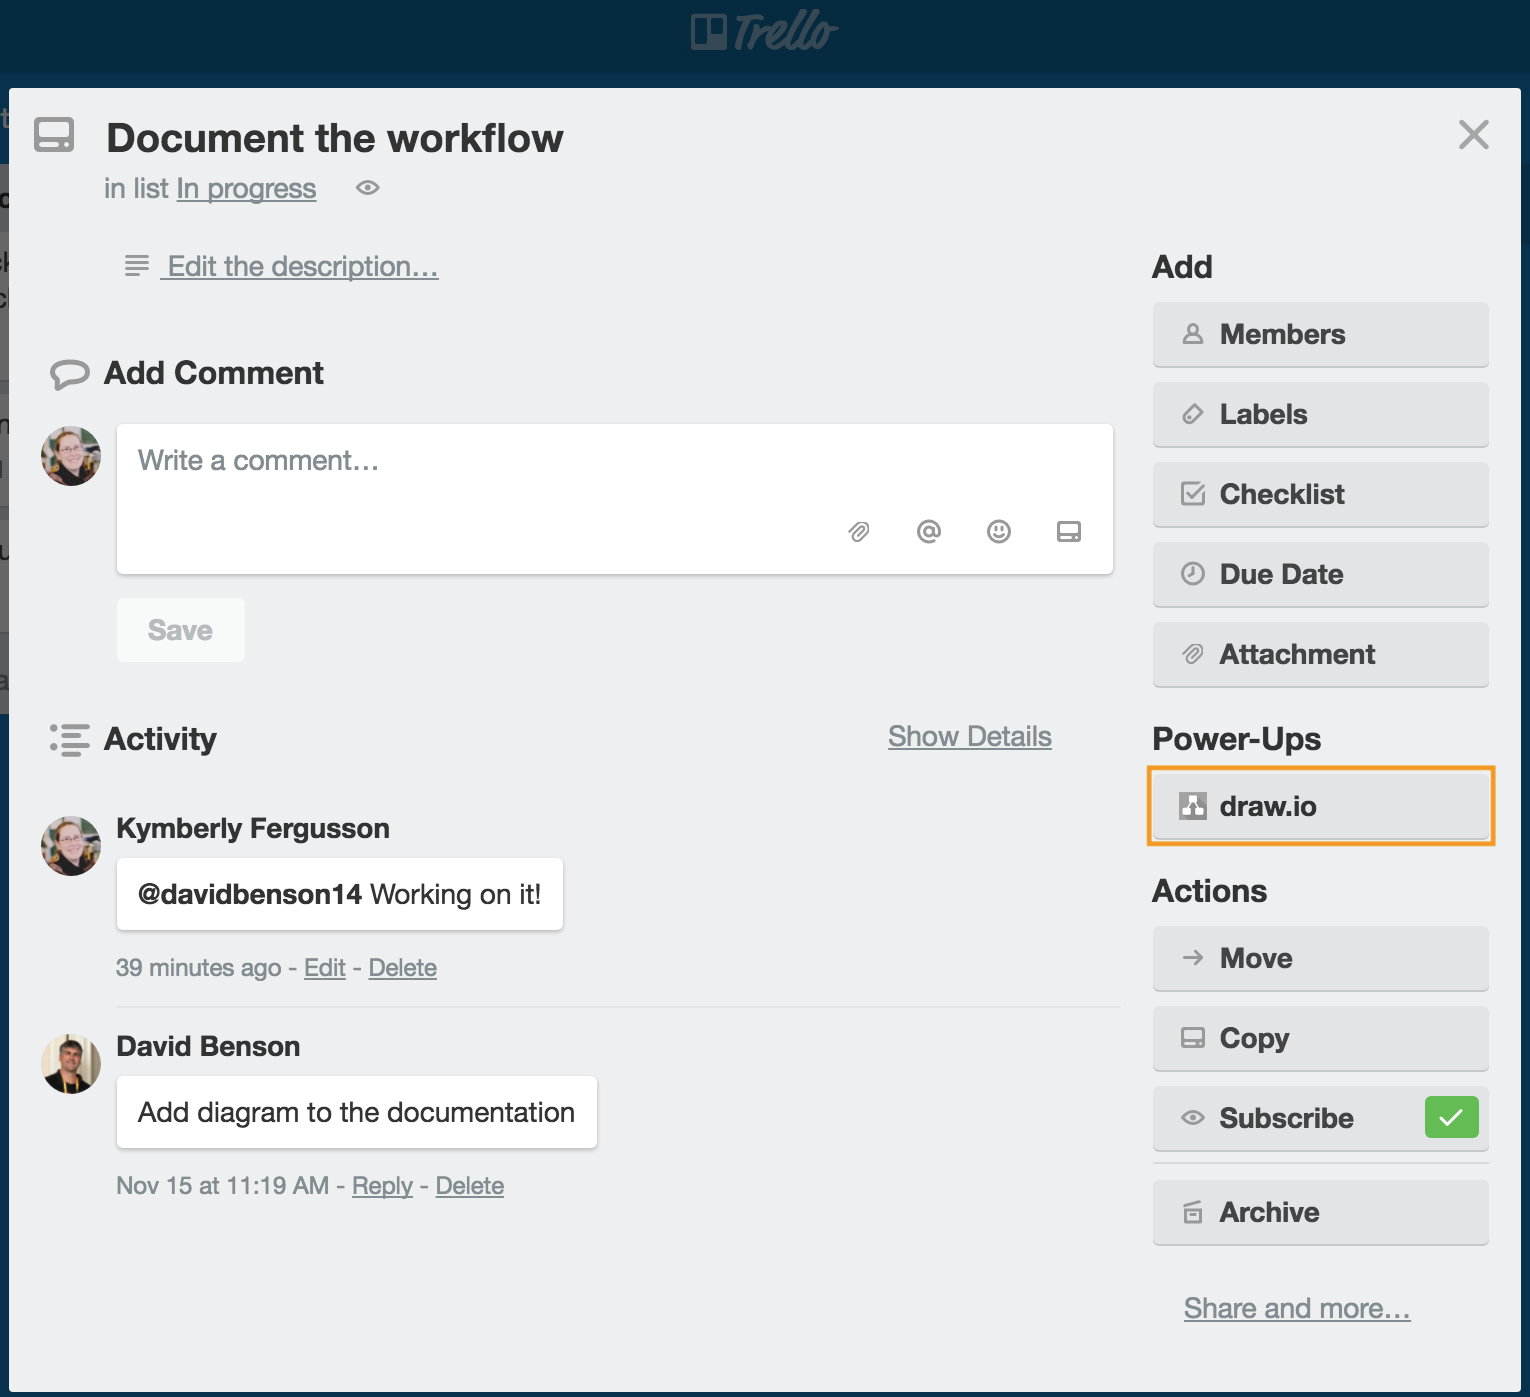 draw.io - add a diagram to a Trello card